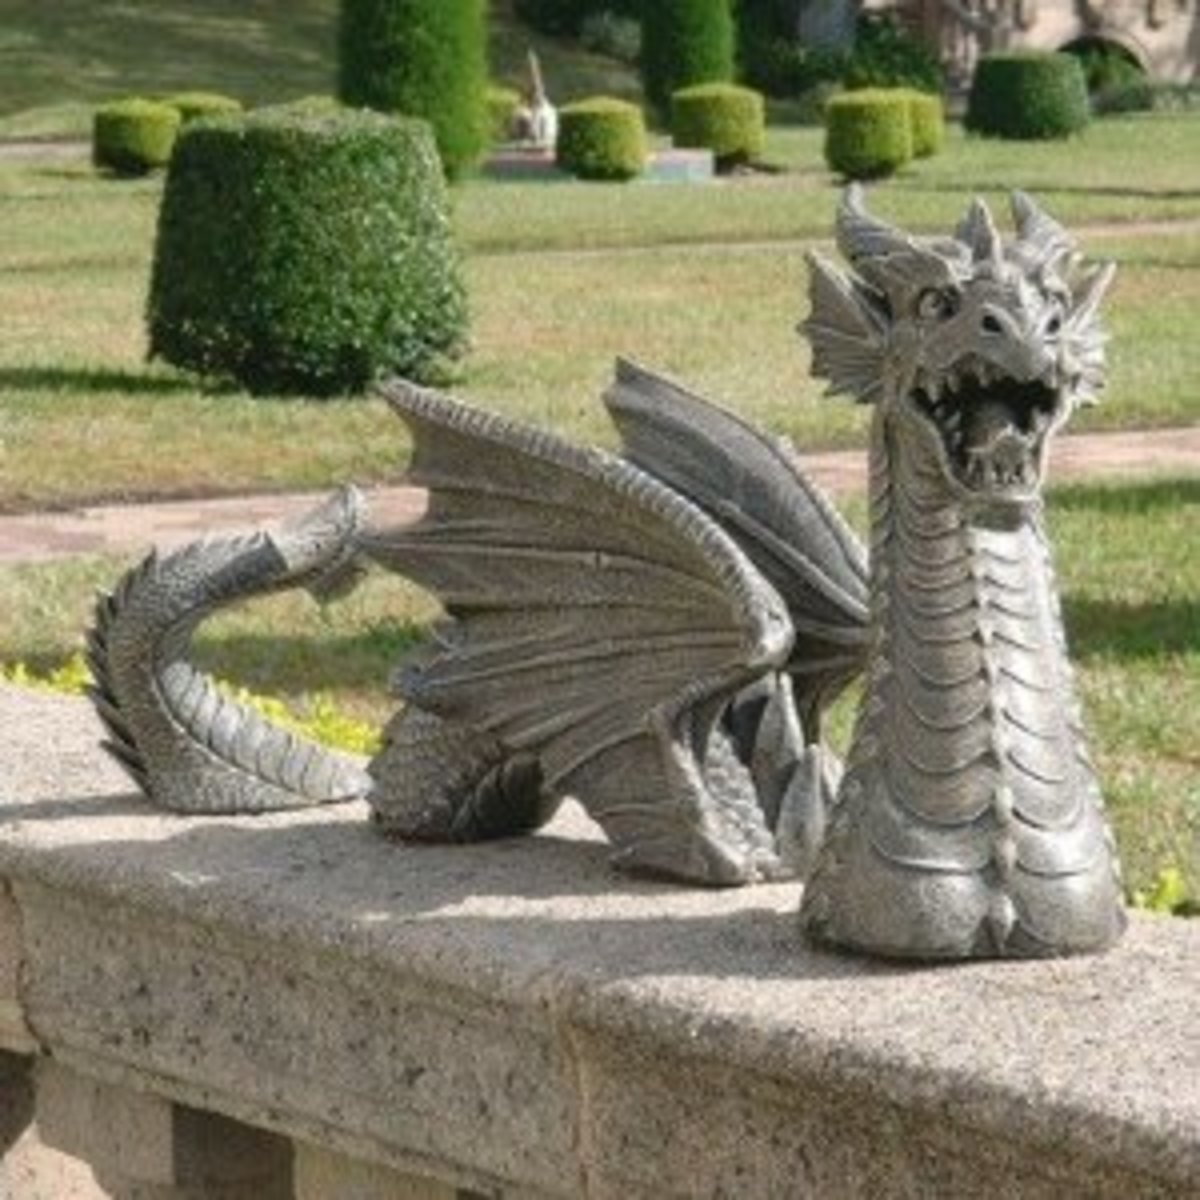 The Dragon of Falkenberg Castle Moat by Design Toscano